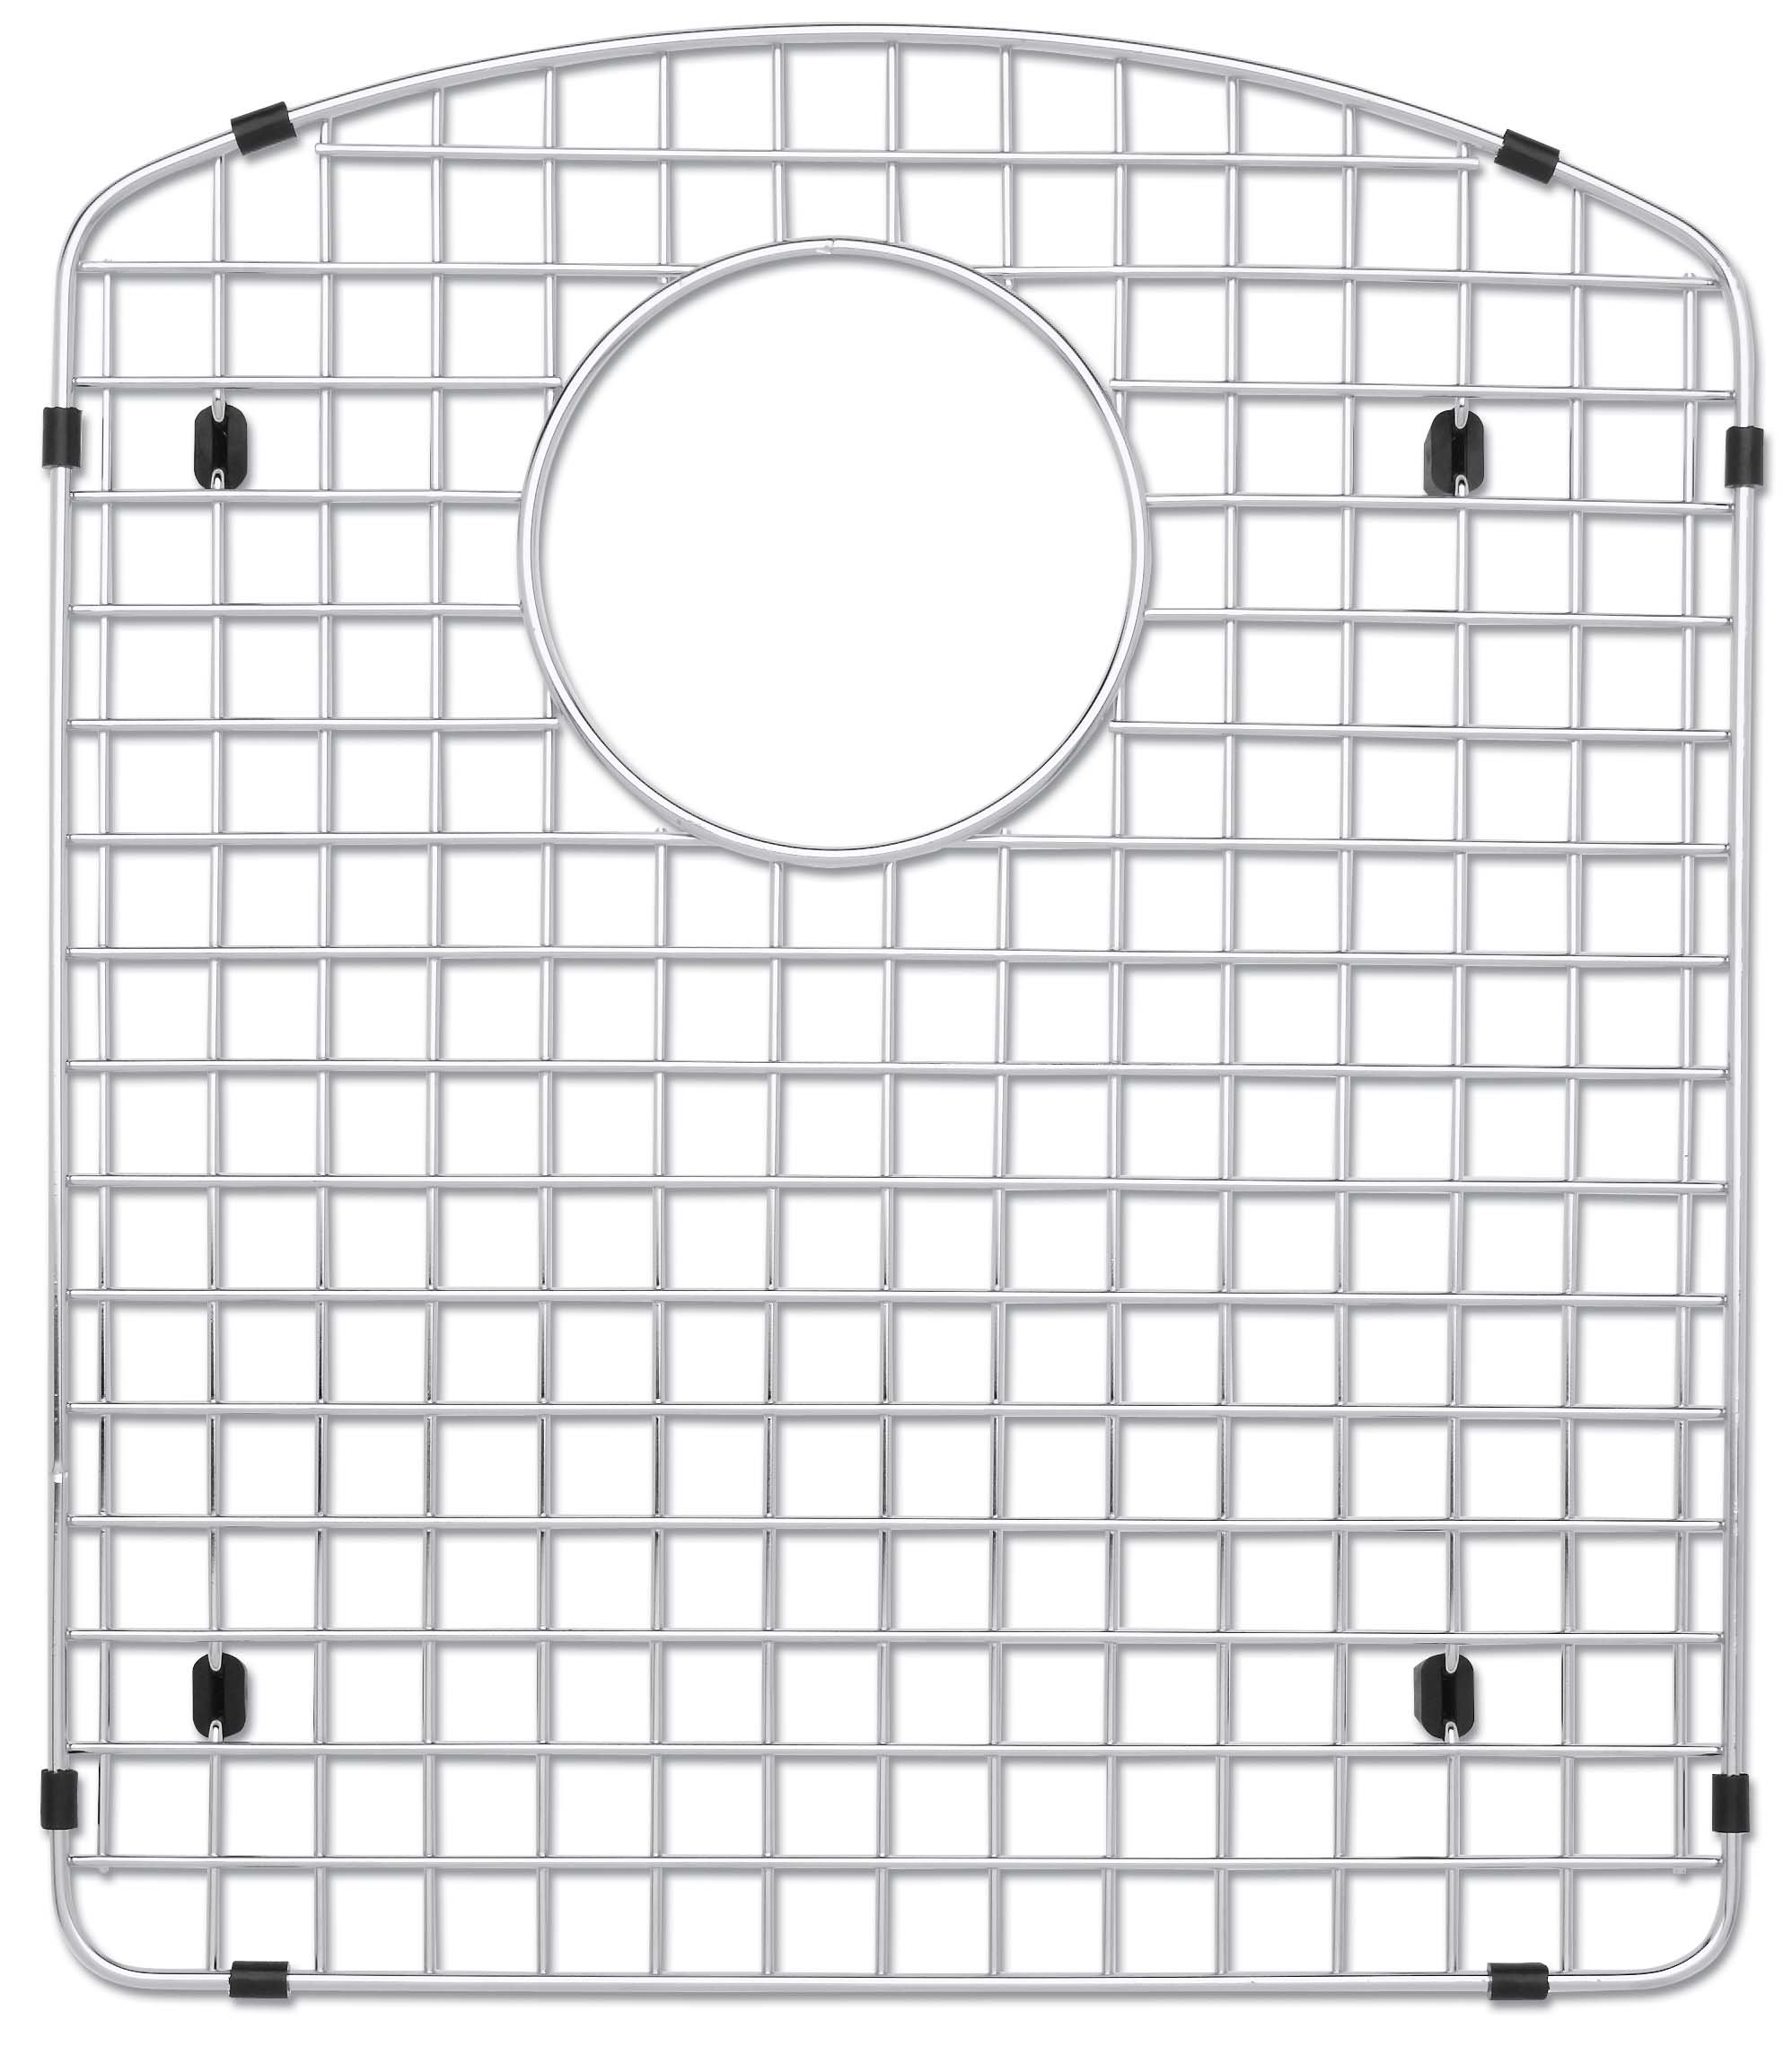 B220998 Blanco 220-998 Stainless Steel Sink Grid by BLANCO